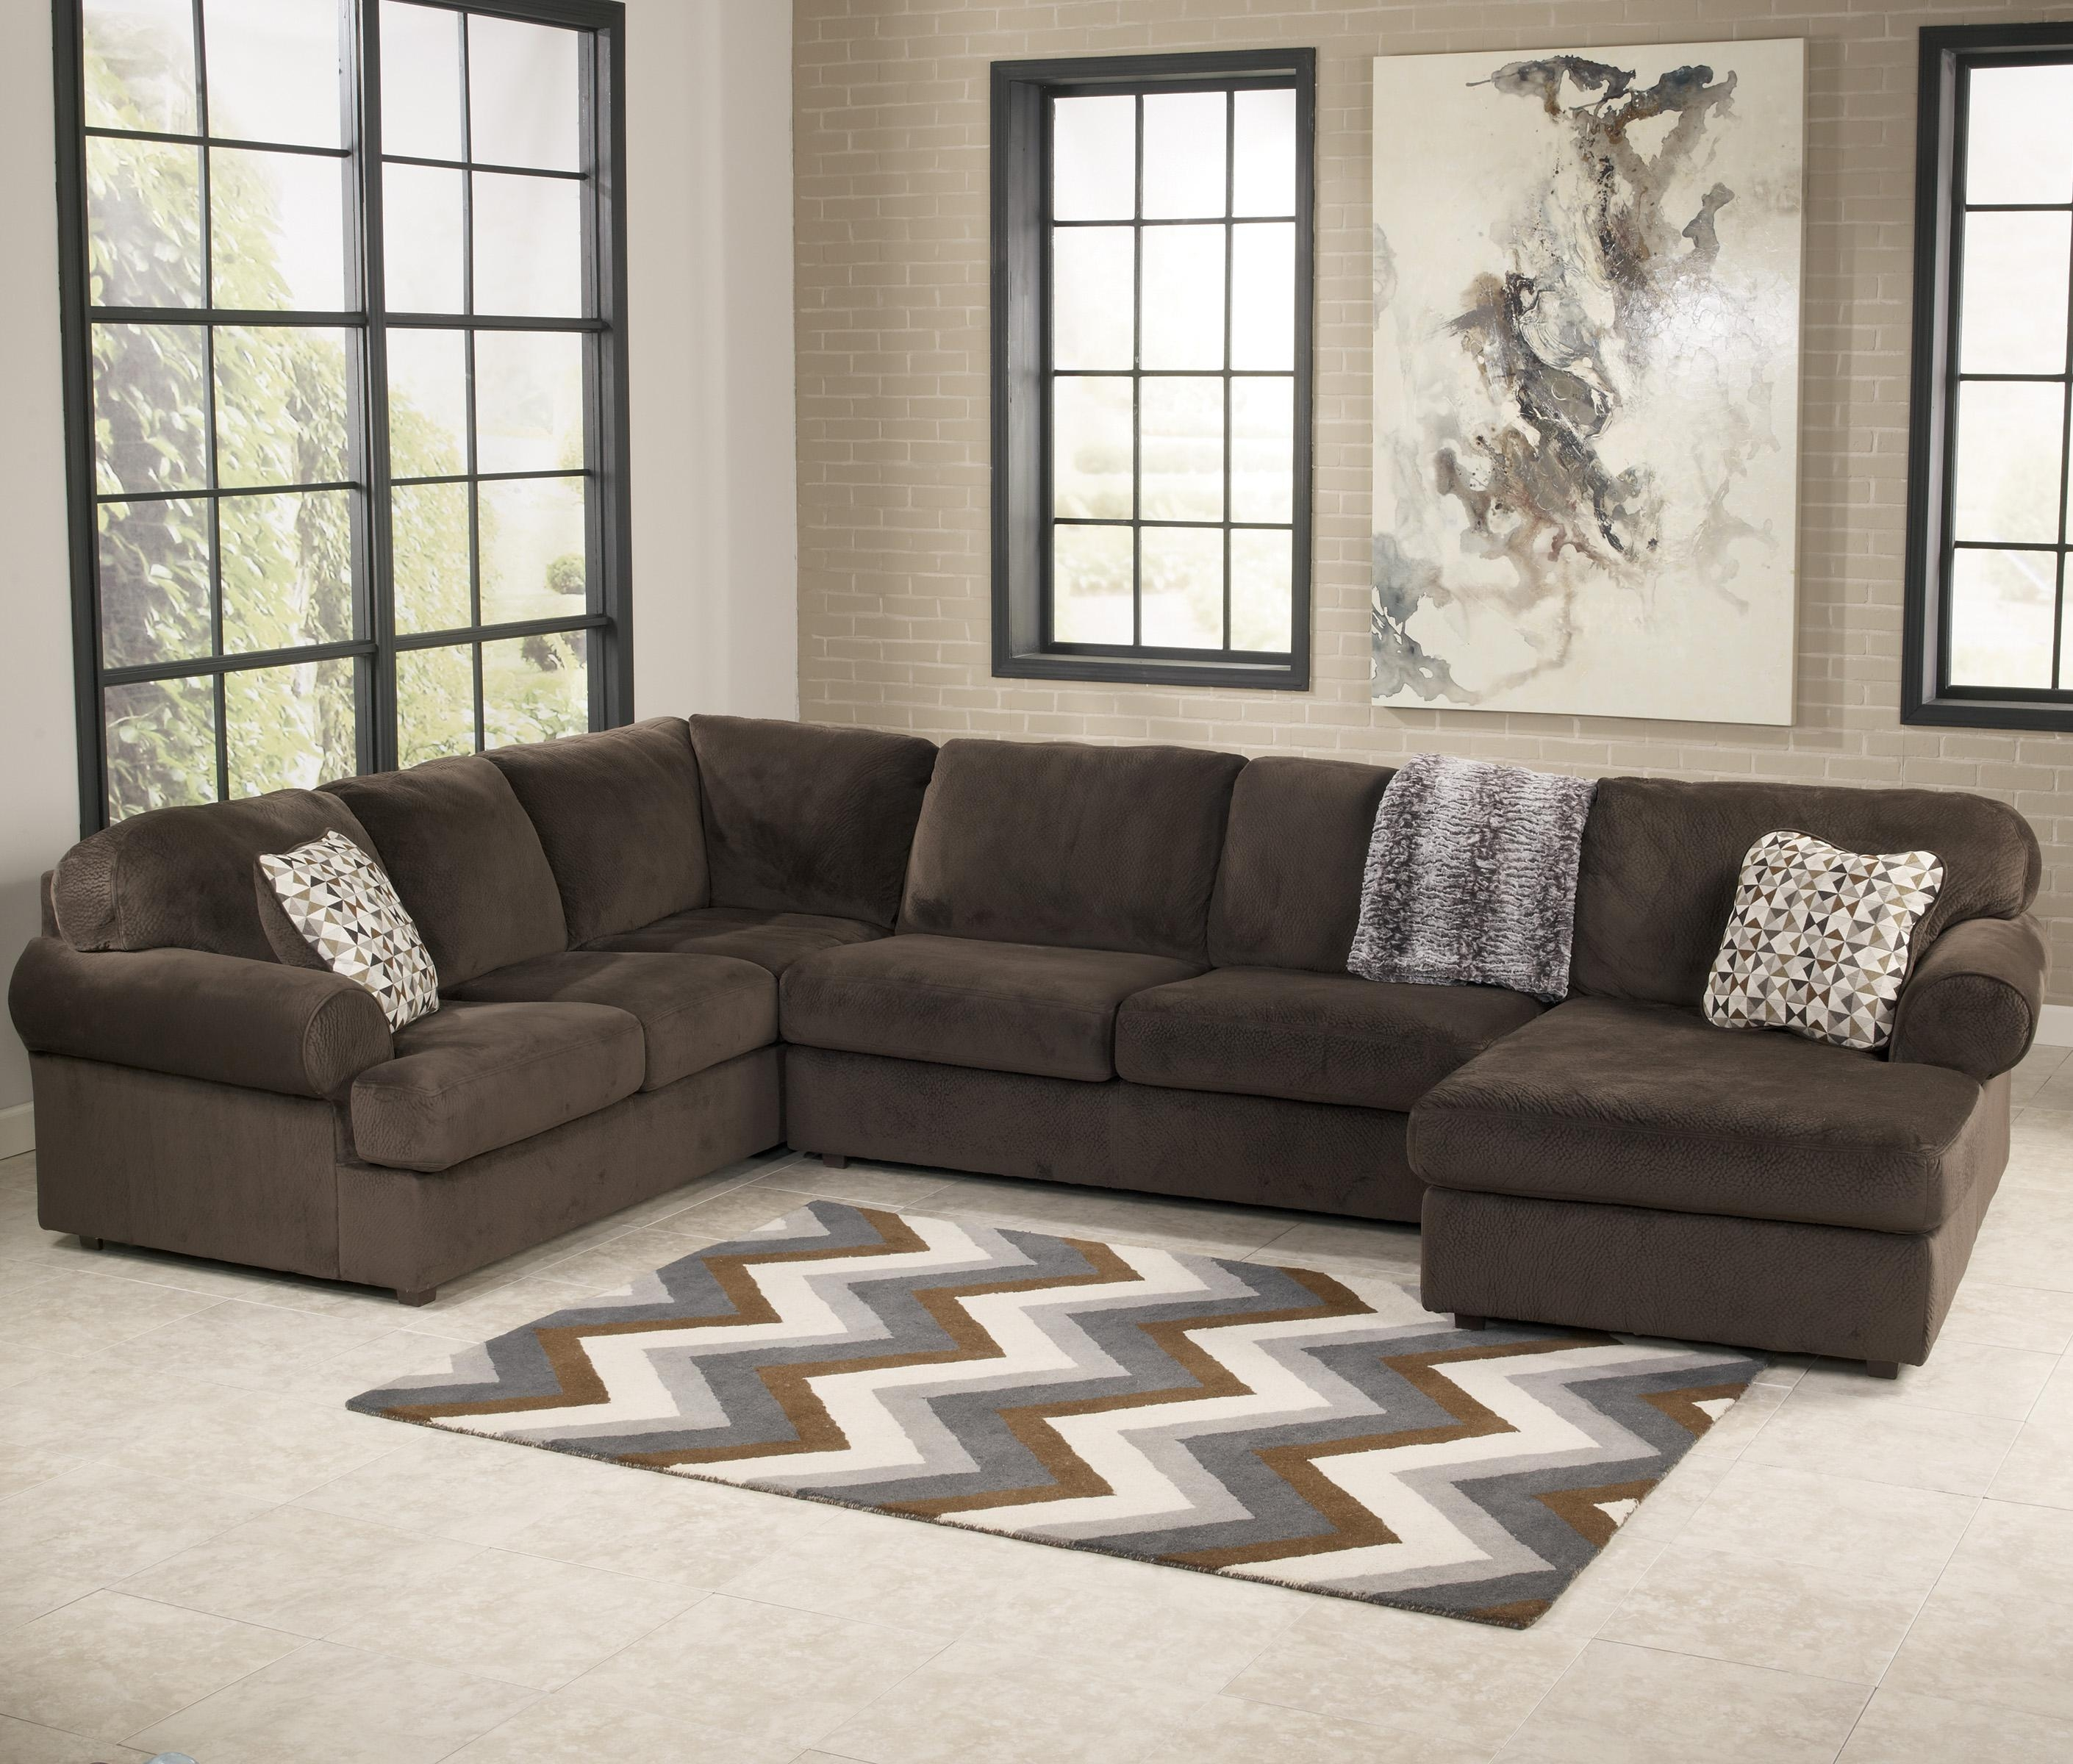 Signature Designashley Jessa Place – Chocolate Casual Inside Ashley Curved Sectional (View 9 of 15)